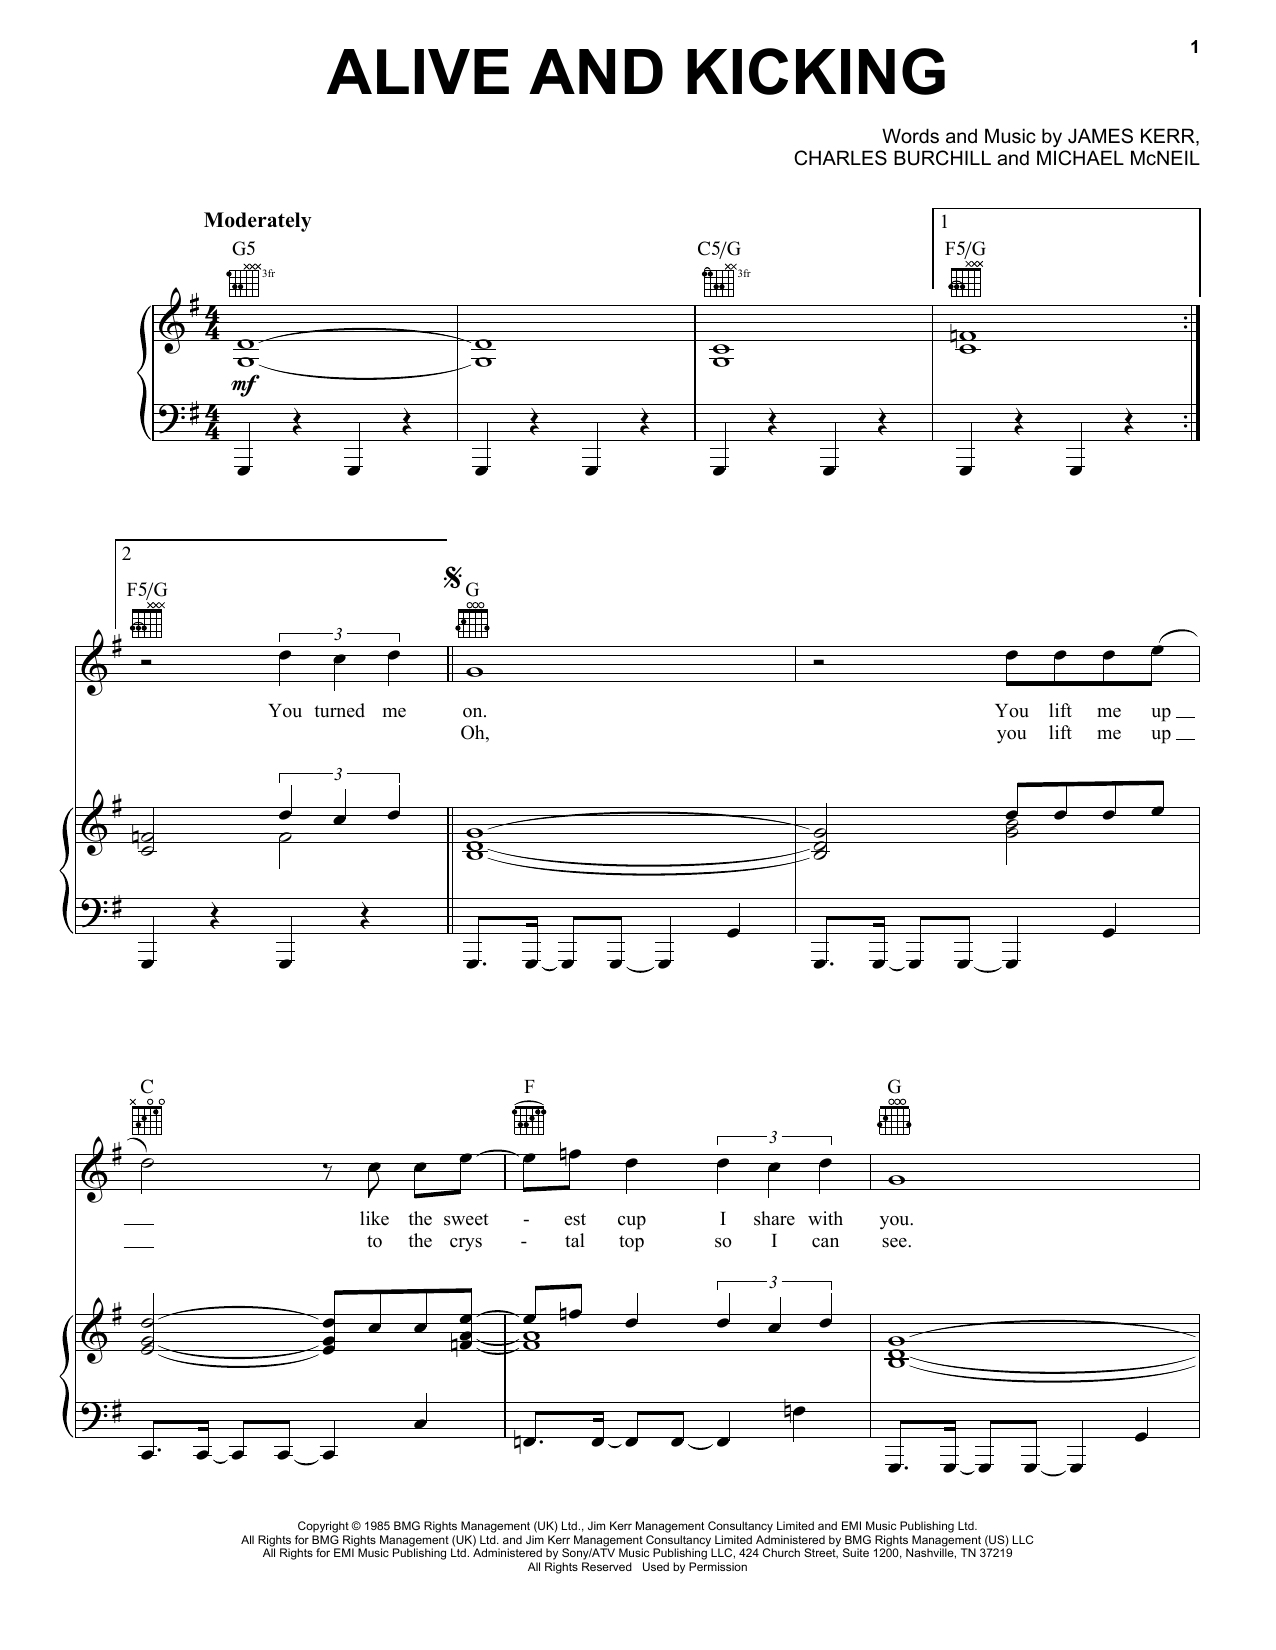 Simple Minds Alive And Kicking Sheet Music Notes Chords Download Printable Piano Vocal Guitar Right Hand Melody Sku 405524